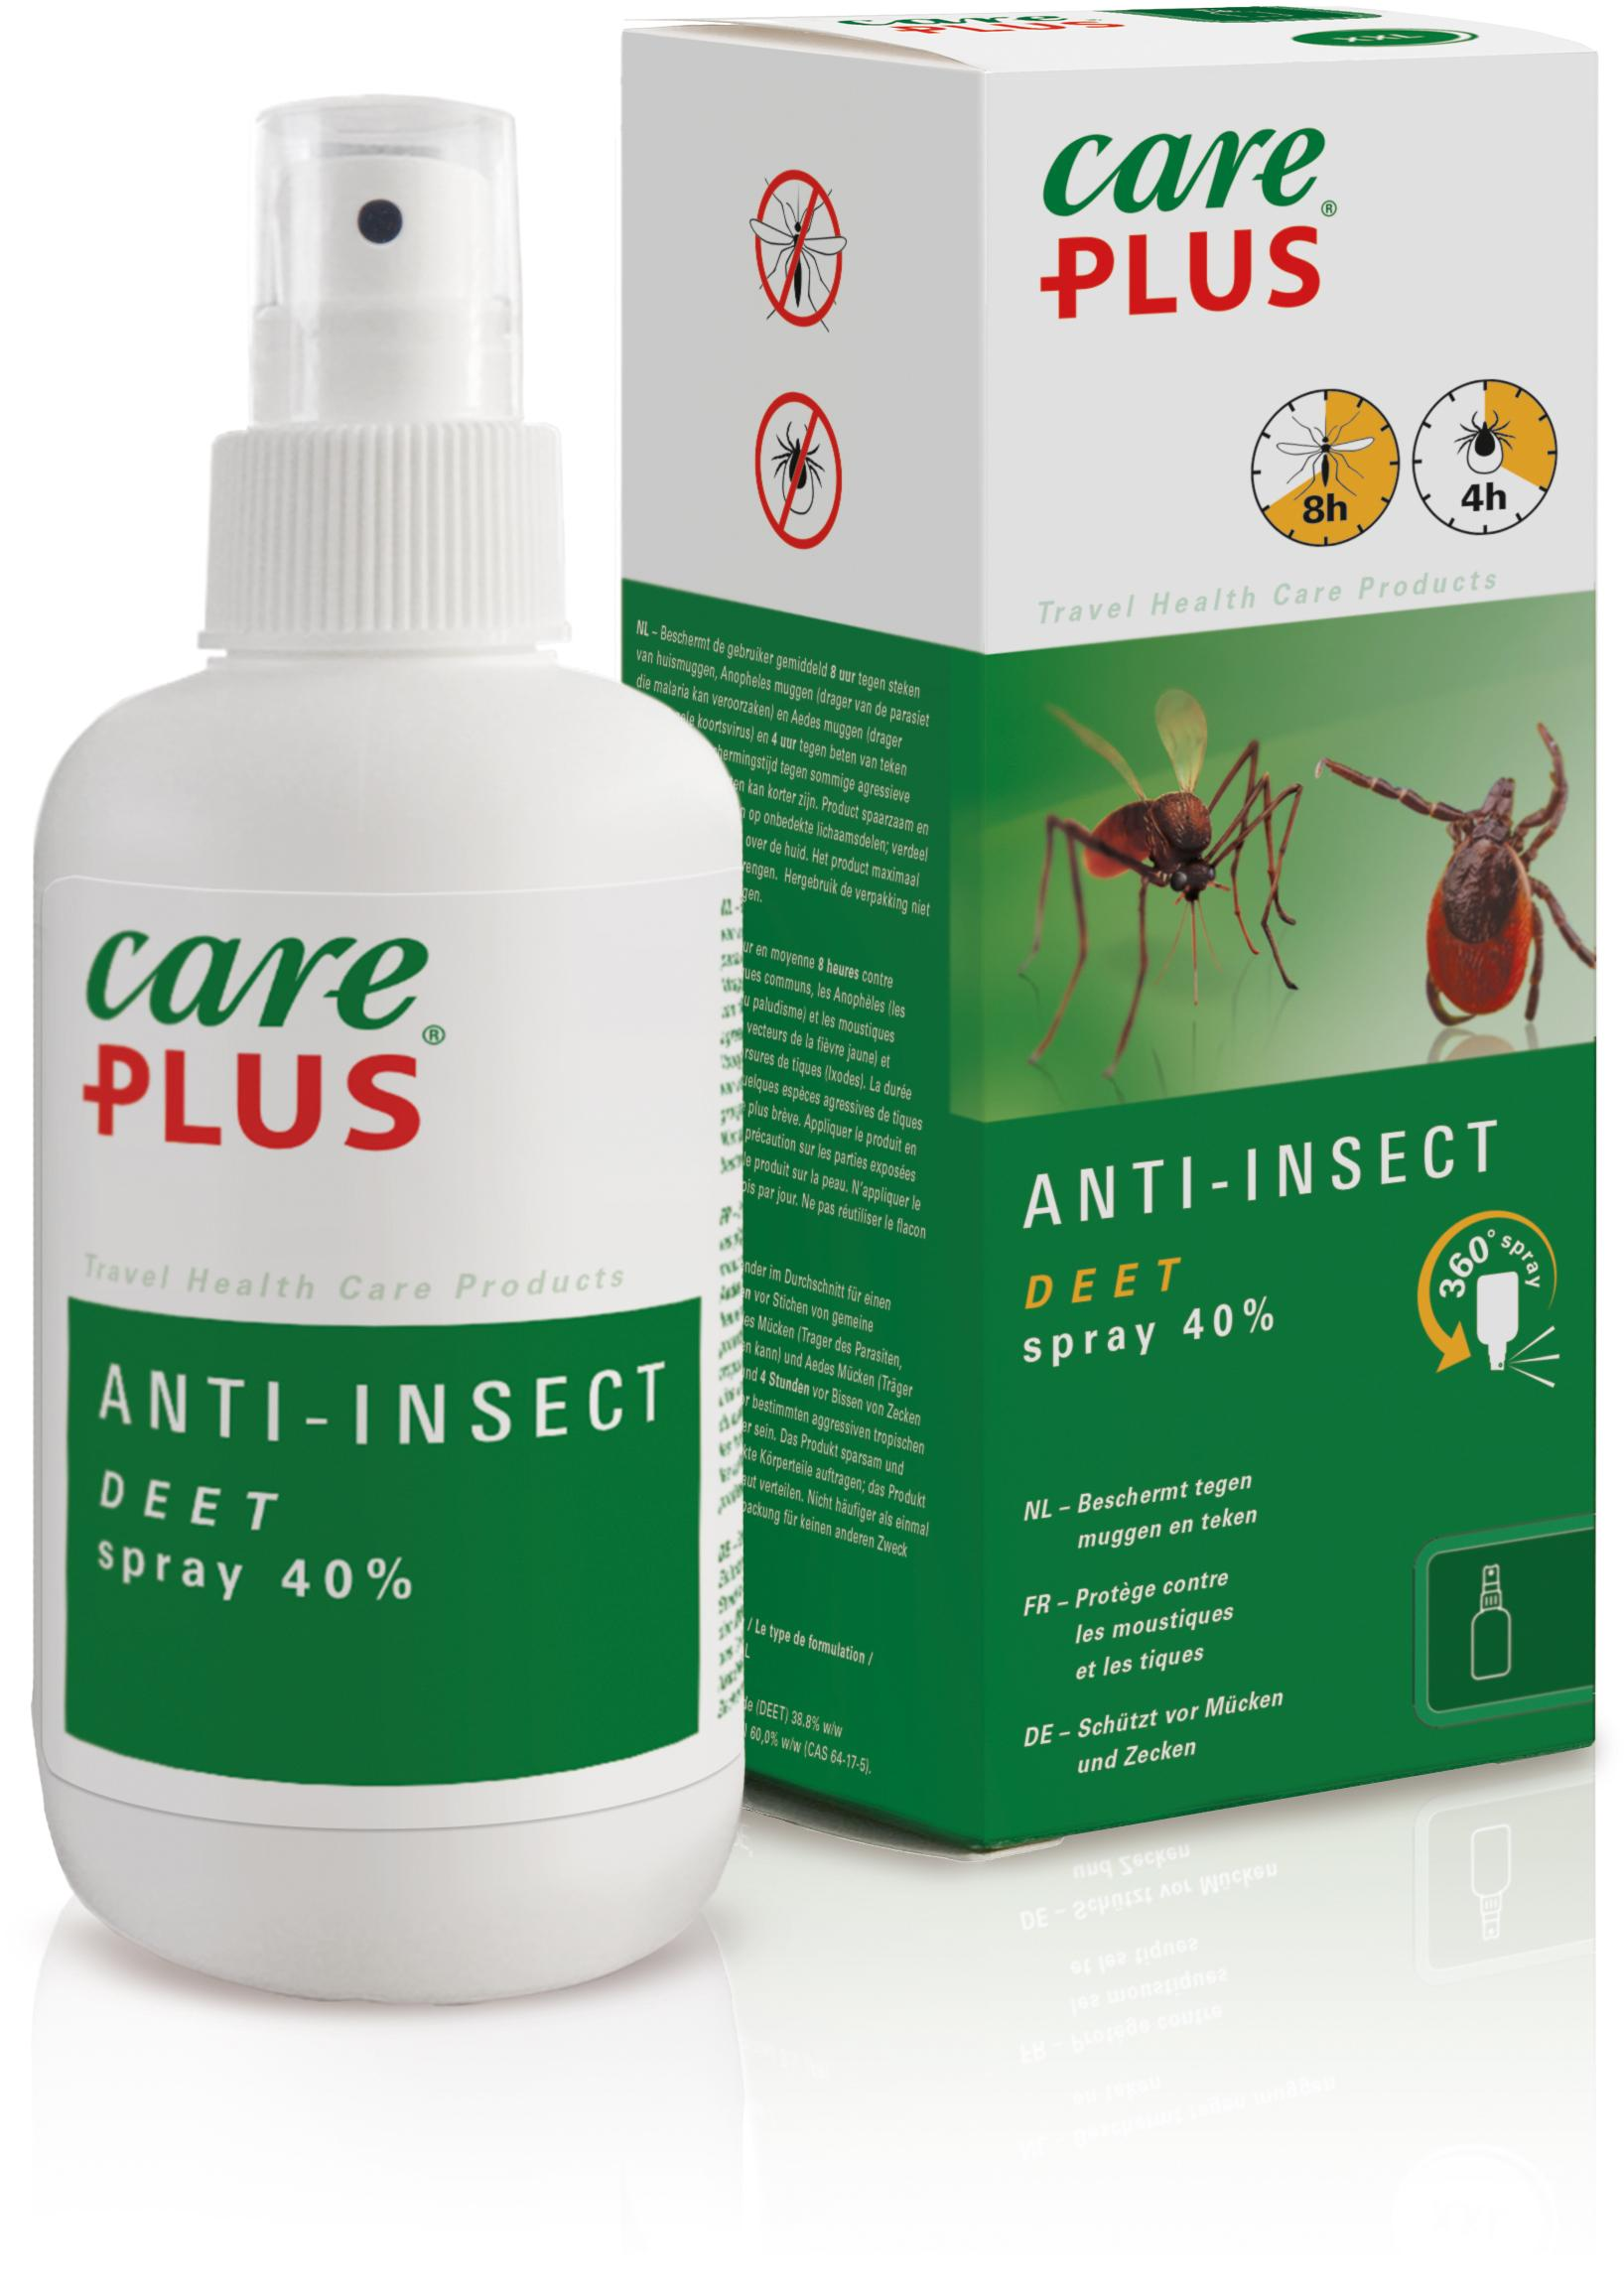 Anti-insect Deet 40% Spray